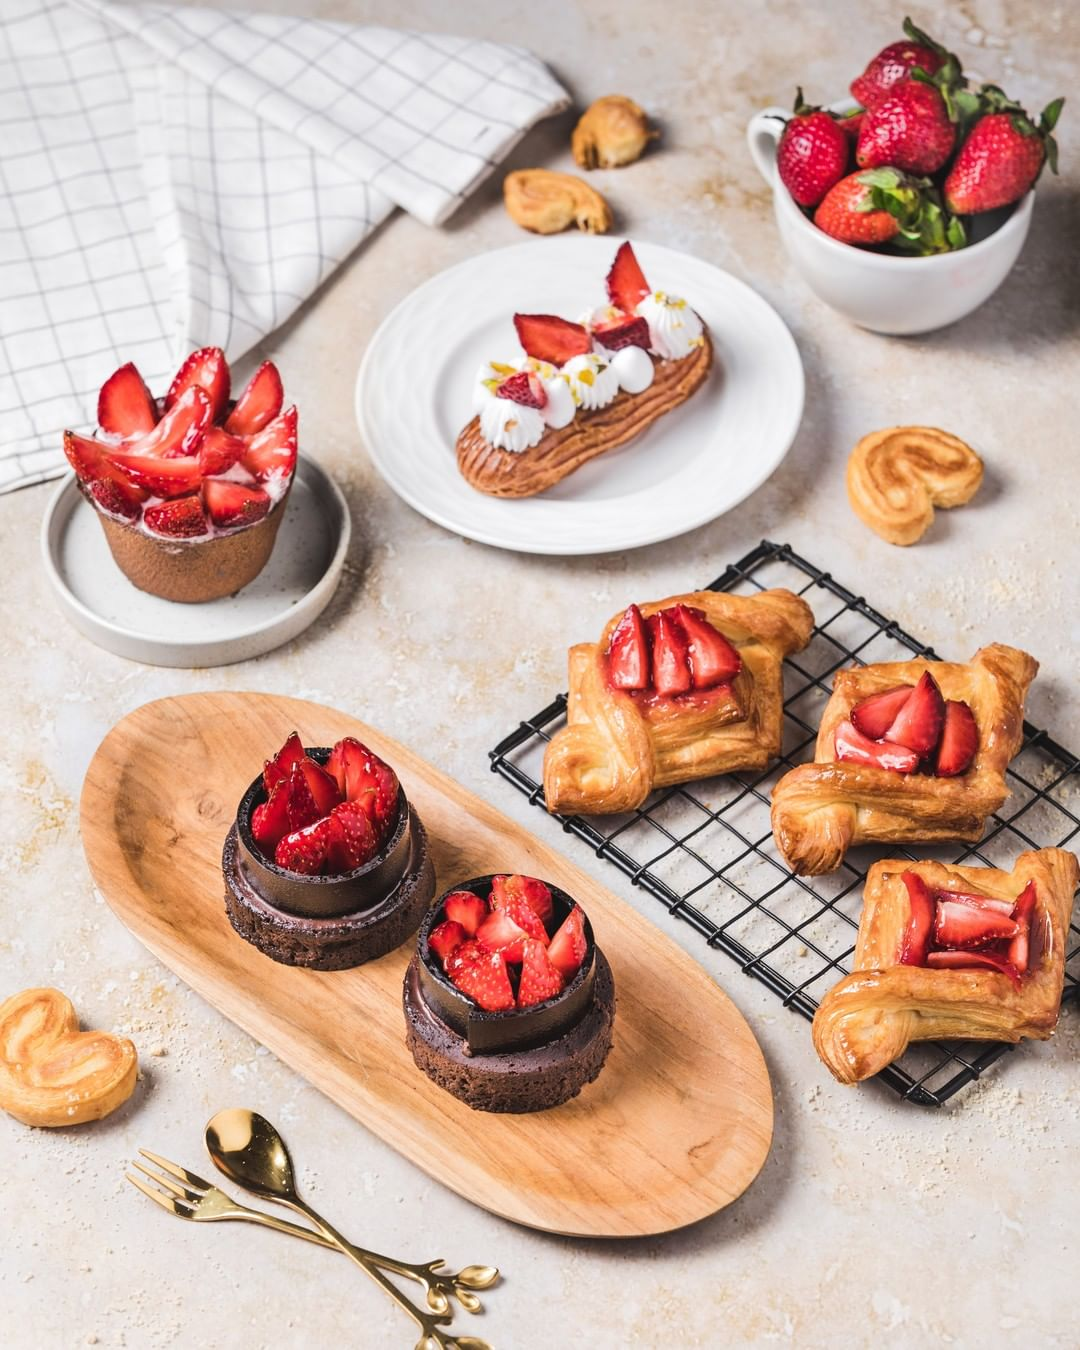 'Tis the season or strawberries and we're celebrating this luscious fruit in all its glory and forms.  Grab a basket and go #strawberry-picking or indulge in our strawberry pastries and parfaits. What's more, we're combining our love for sweet and savoury this season, with fruit-based sandwiches including a special Strawberry Swirl sandwich!  #ForTheLoveofStrawberries, see you at a Foodhall near you!  #FoodhallIndia #StrawberrySeason #StrawberryLovers #StrawberryFix #StrawberryPastries #StrawberryParfait #ChocolateStrawberryCake